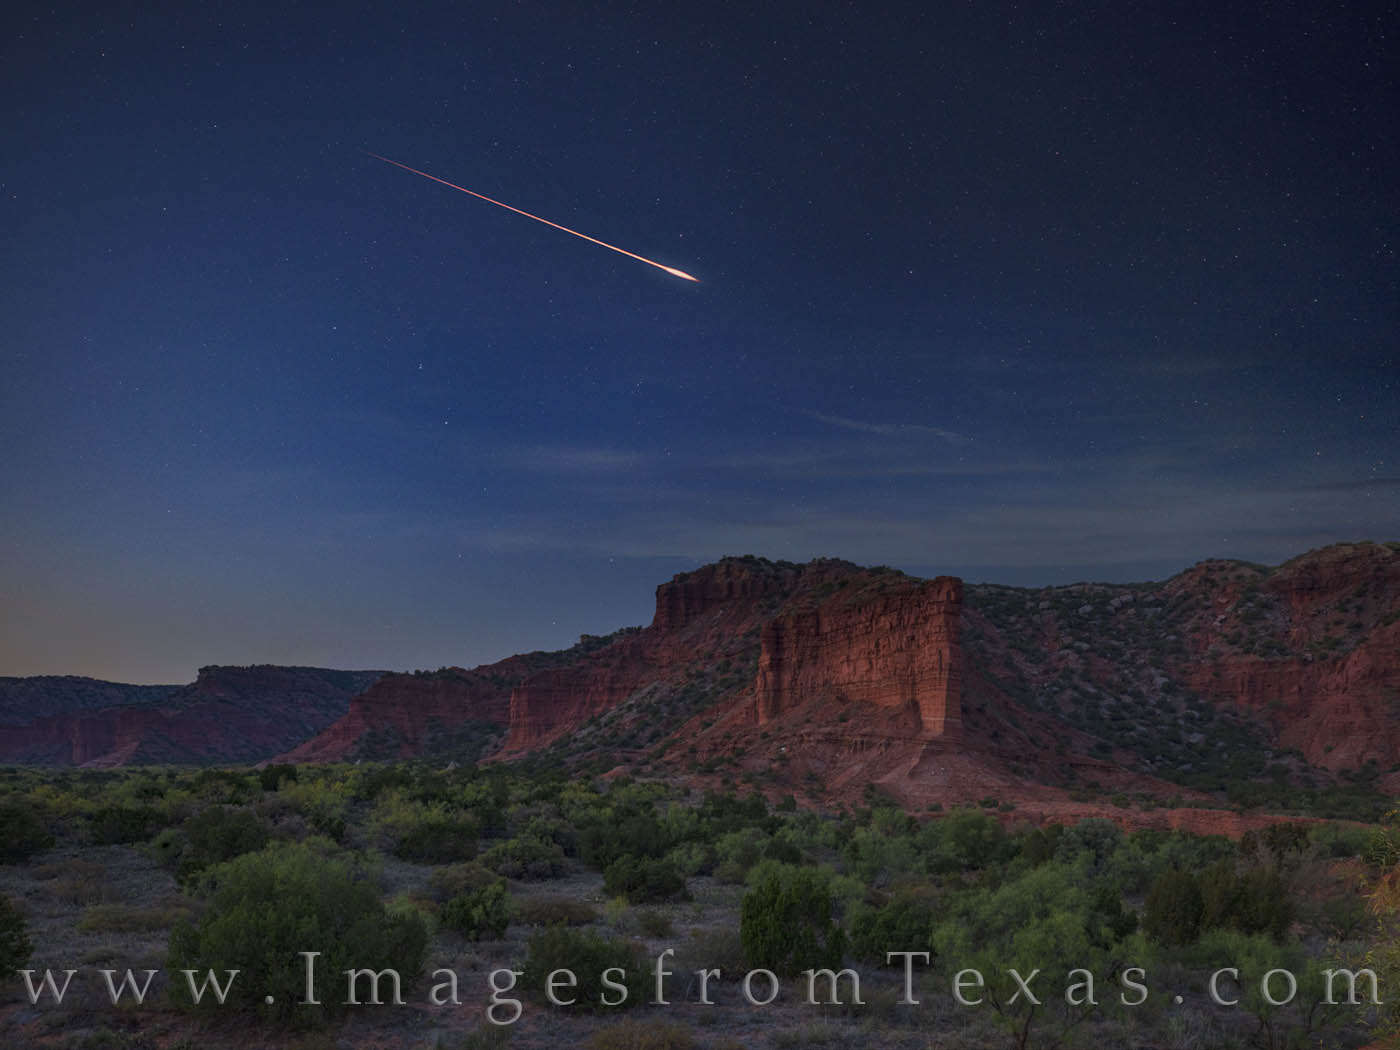 caprock canyons, night sky, draconids, meteors, state park, west texas, photo